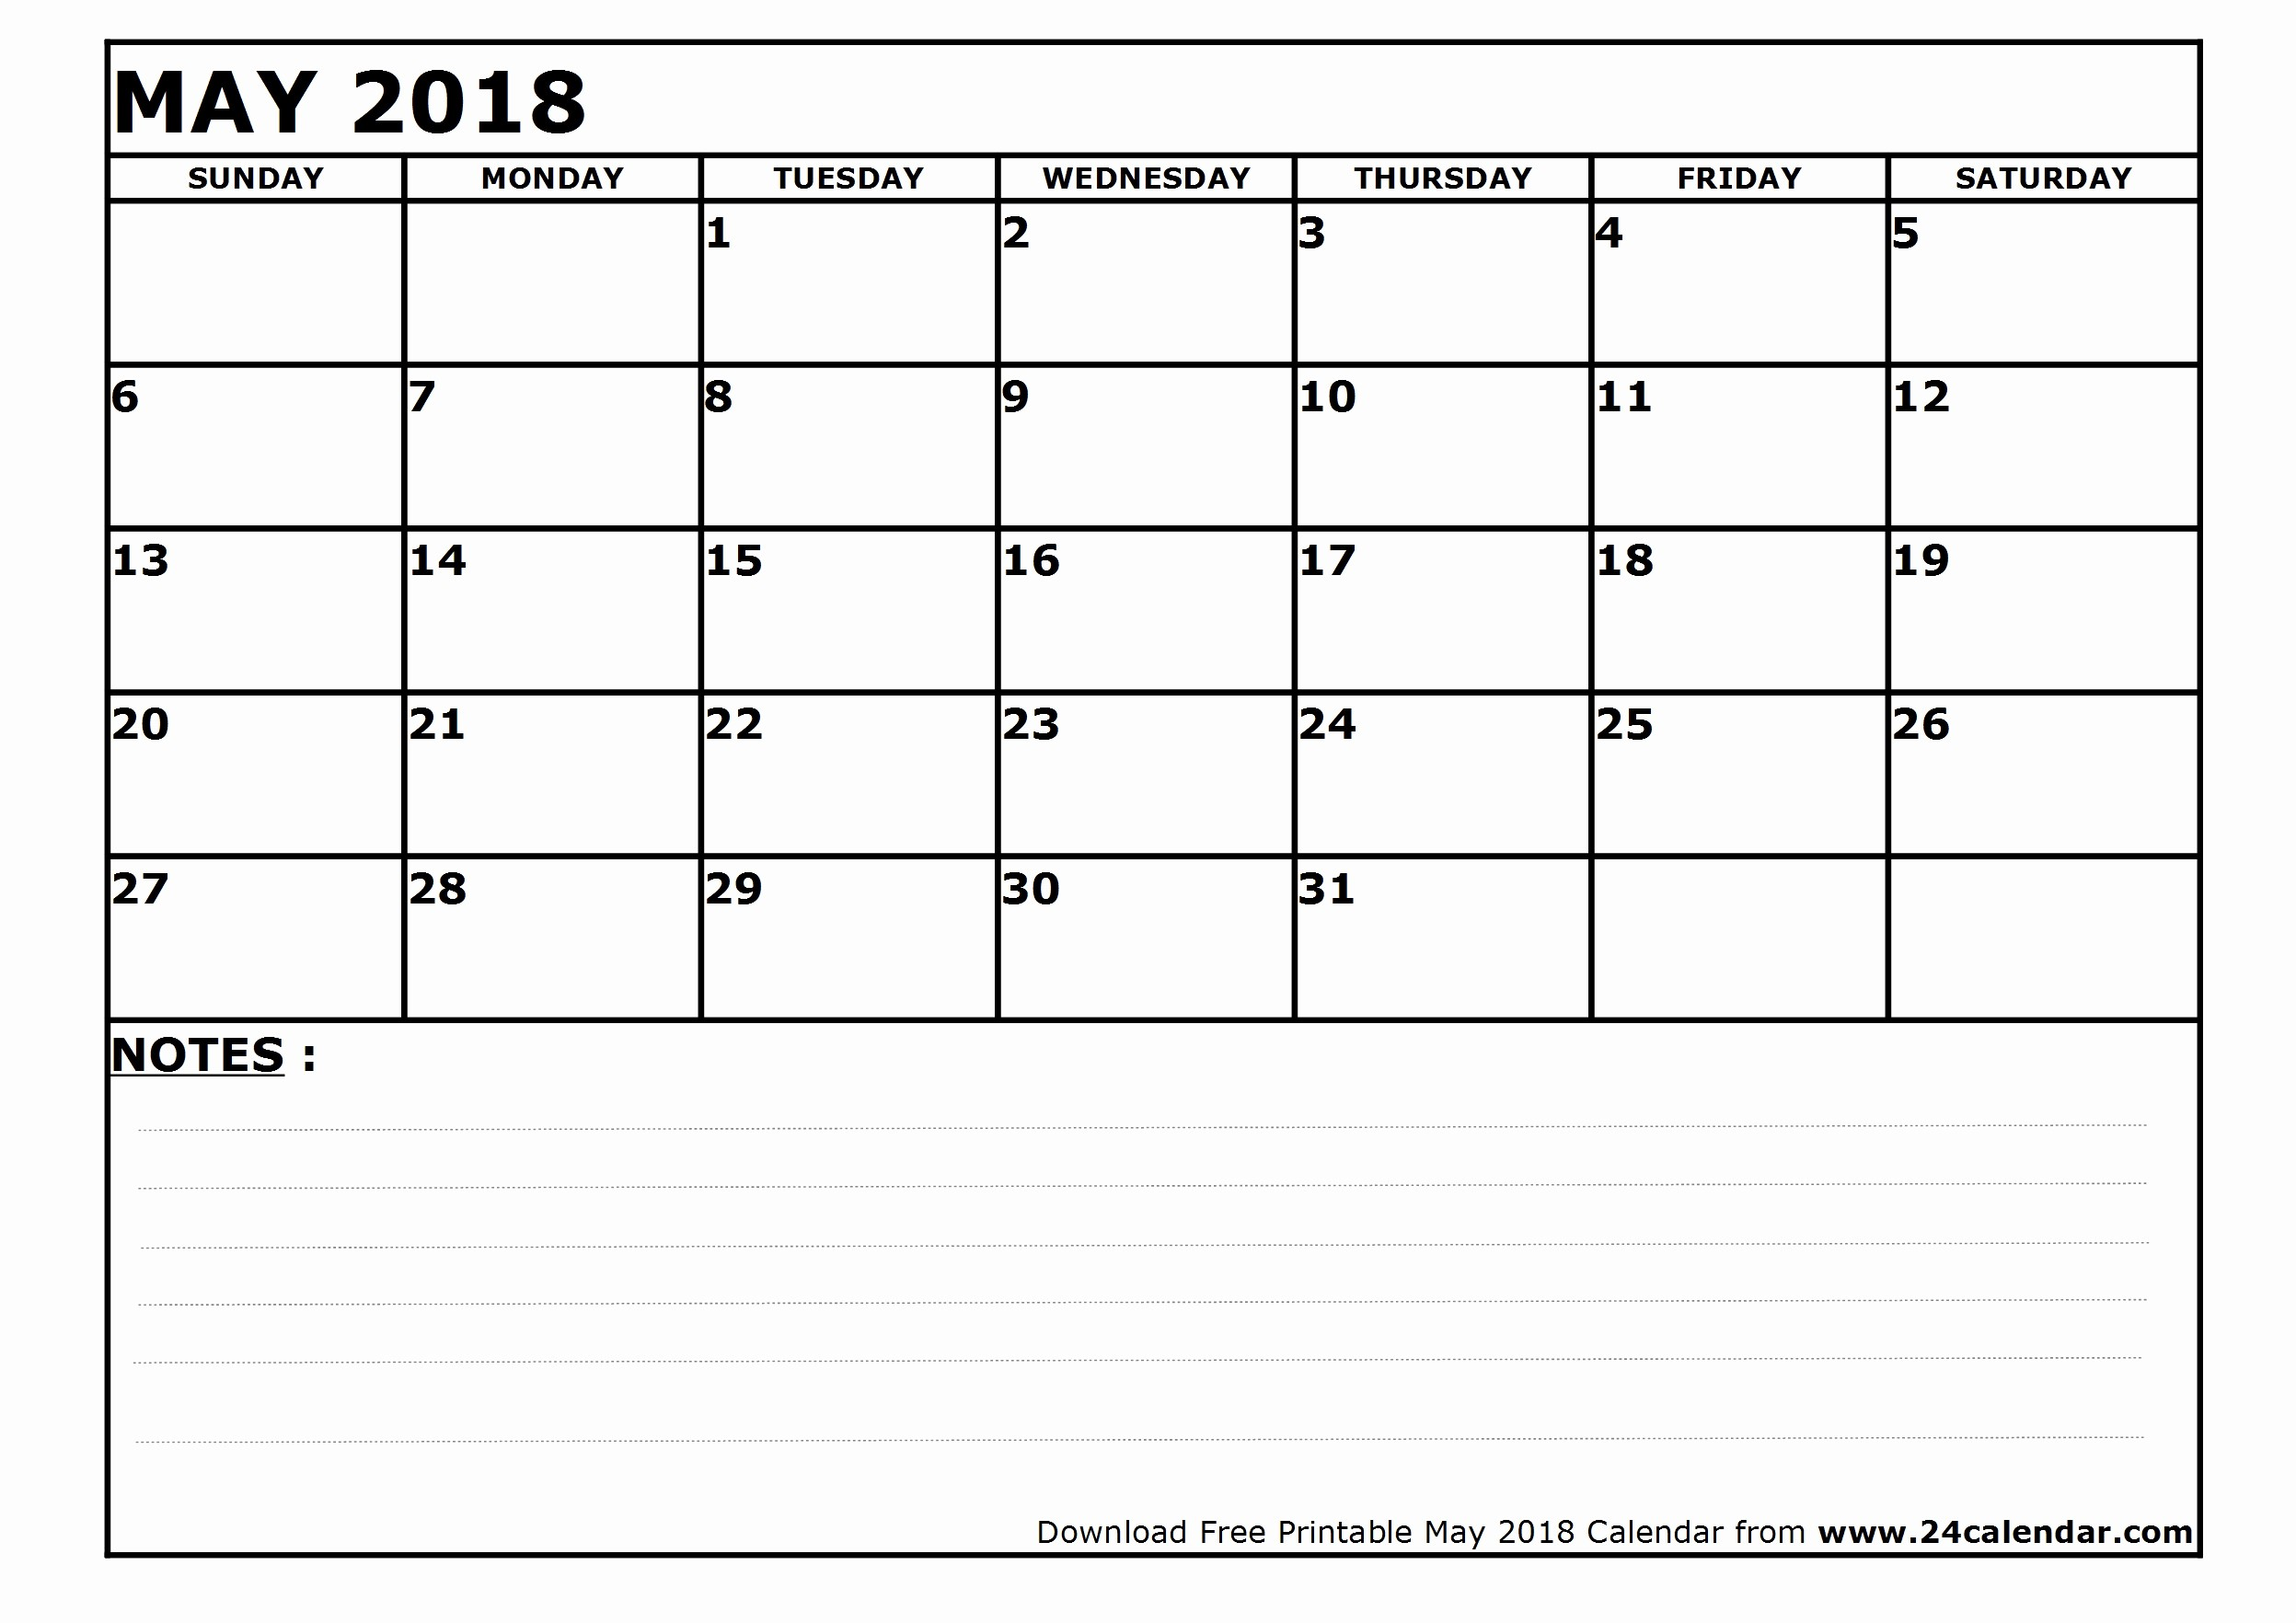 Blank May 2018 Calendar Printable Fresh Blank May 2018 Calendar In Printable format